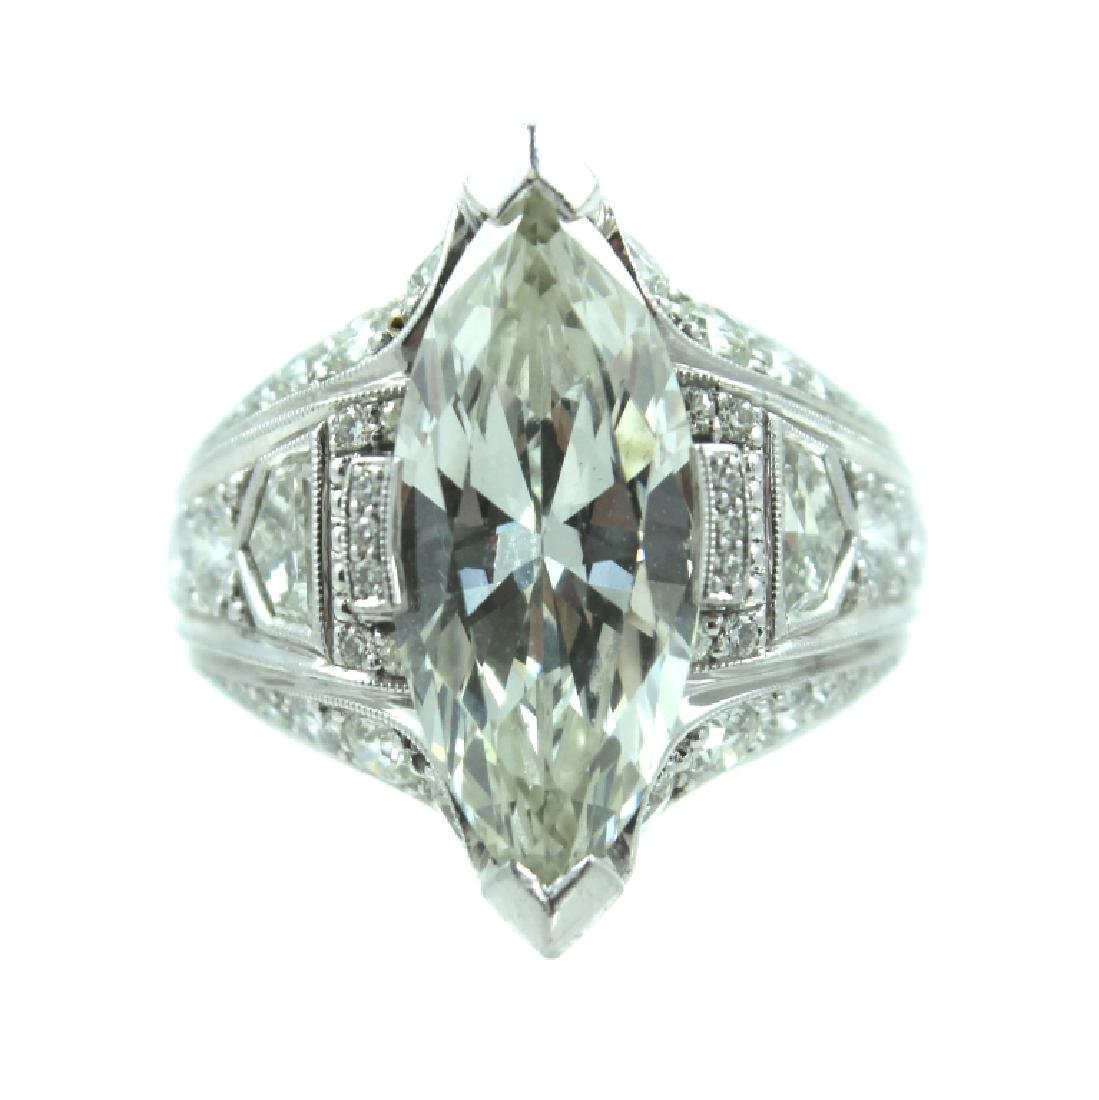 ESTATE 7.50 TCW MARQUISE DIAMOND ENGAGEMENT RING